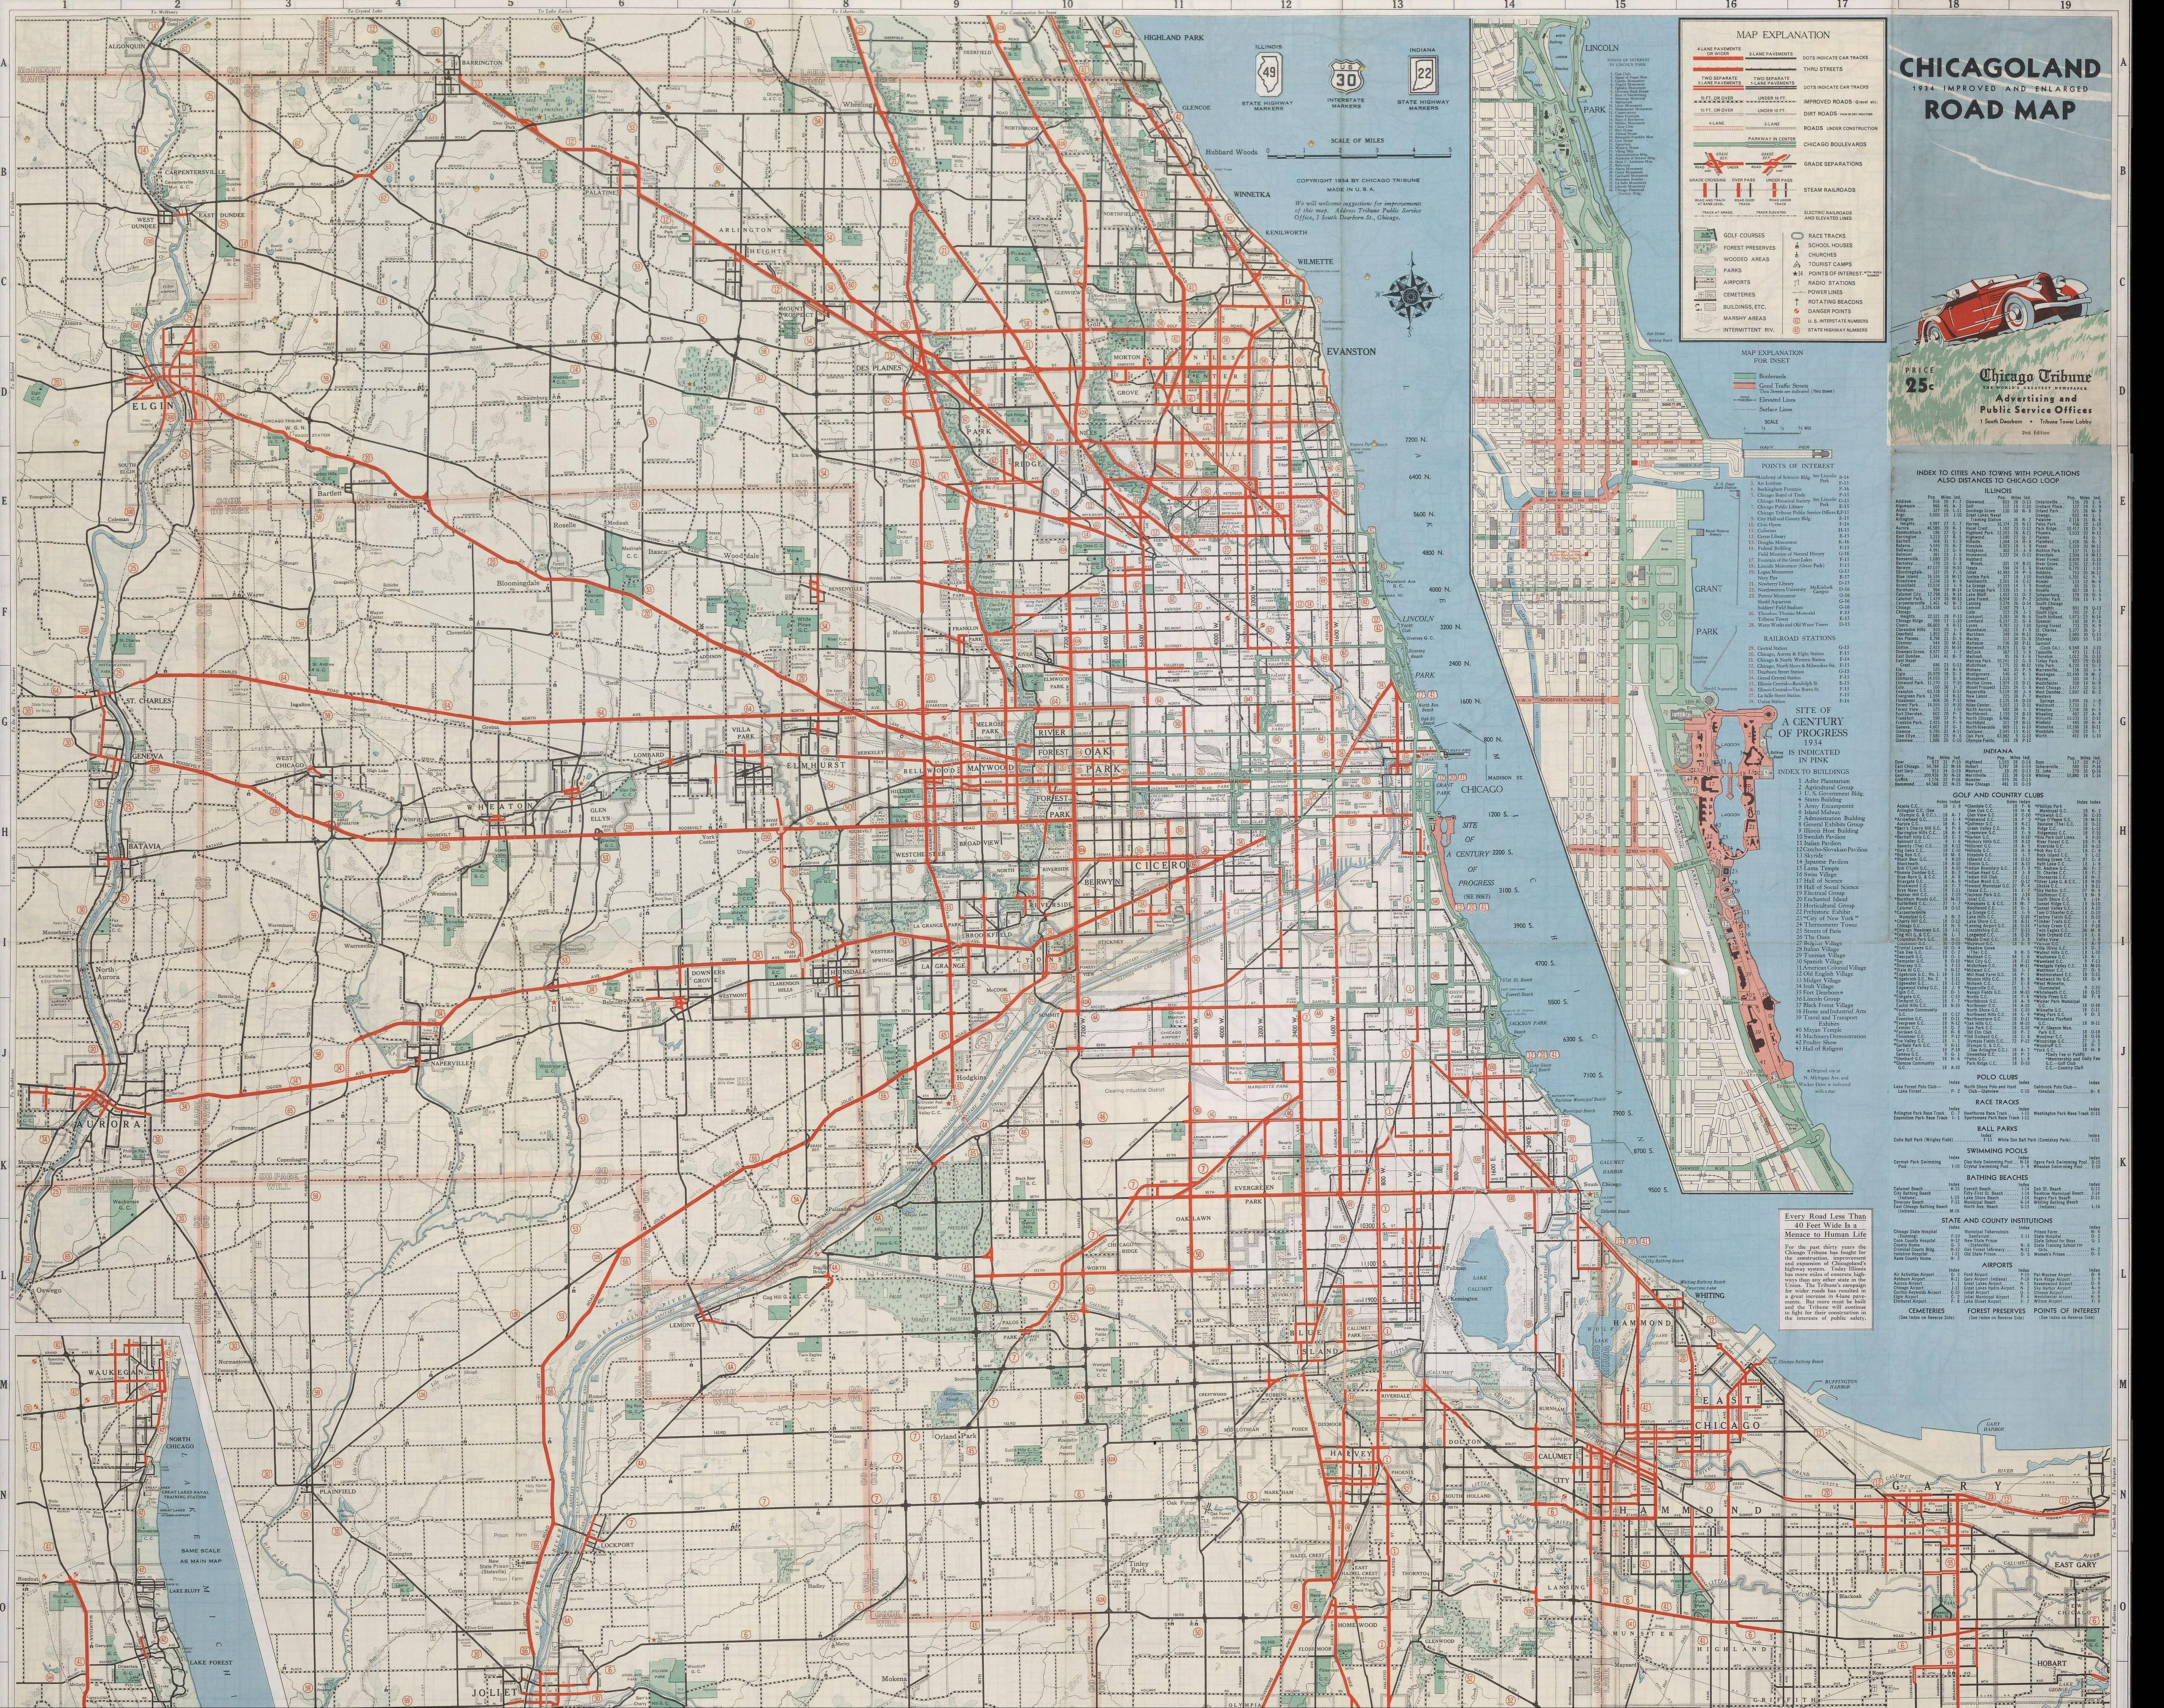 Chicagoland Road Map - 1934 #map #chicago   maps   Chicago ... on people map, chicago murder map, chicago area map, chicago street map with numbers, chicago highway map with names, english map, goose island chicago map, chicago ward map, chicago indianapolis map, google map, chicago cubs map, the state map, chicago crime map, chicago suburban map, chicago united states map, chicago road map, chicago aurora map, chicago texas map, ap map, chicago bay map,